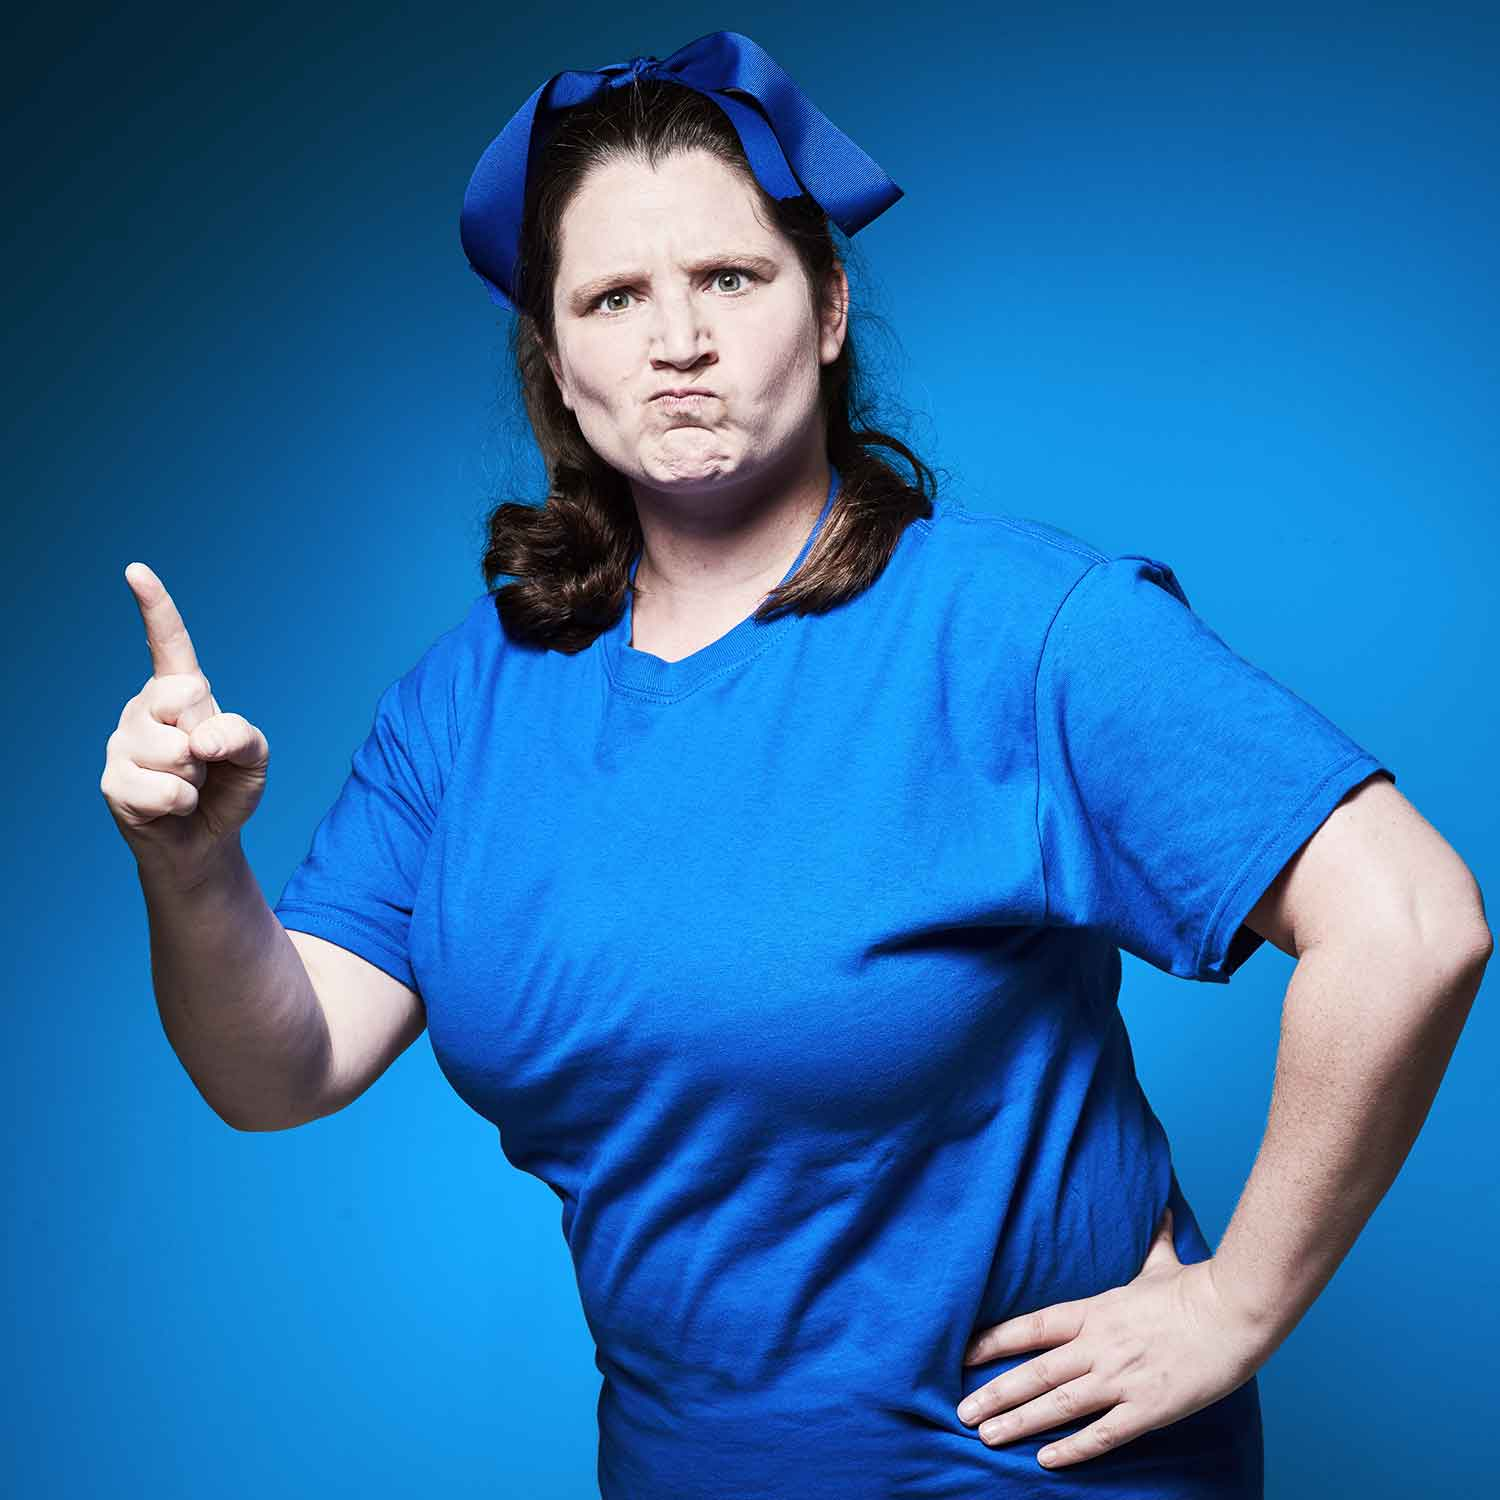 Katie Swimm as Lucy